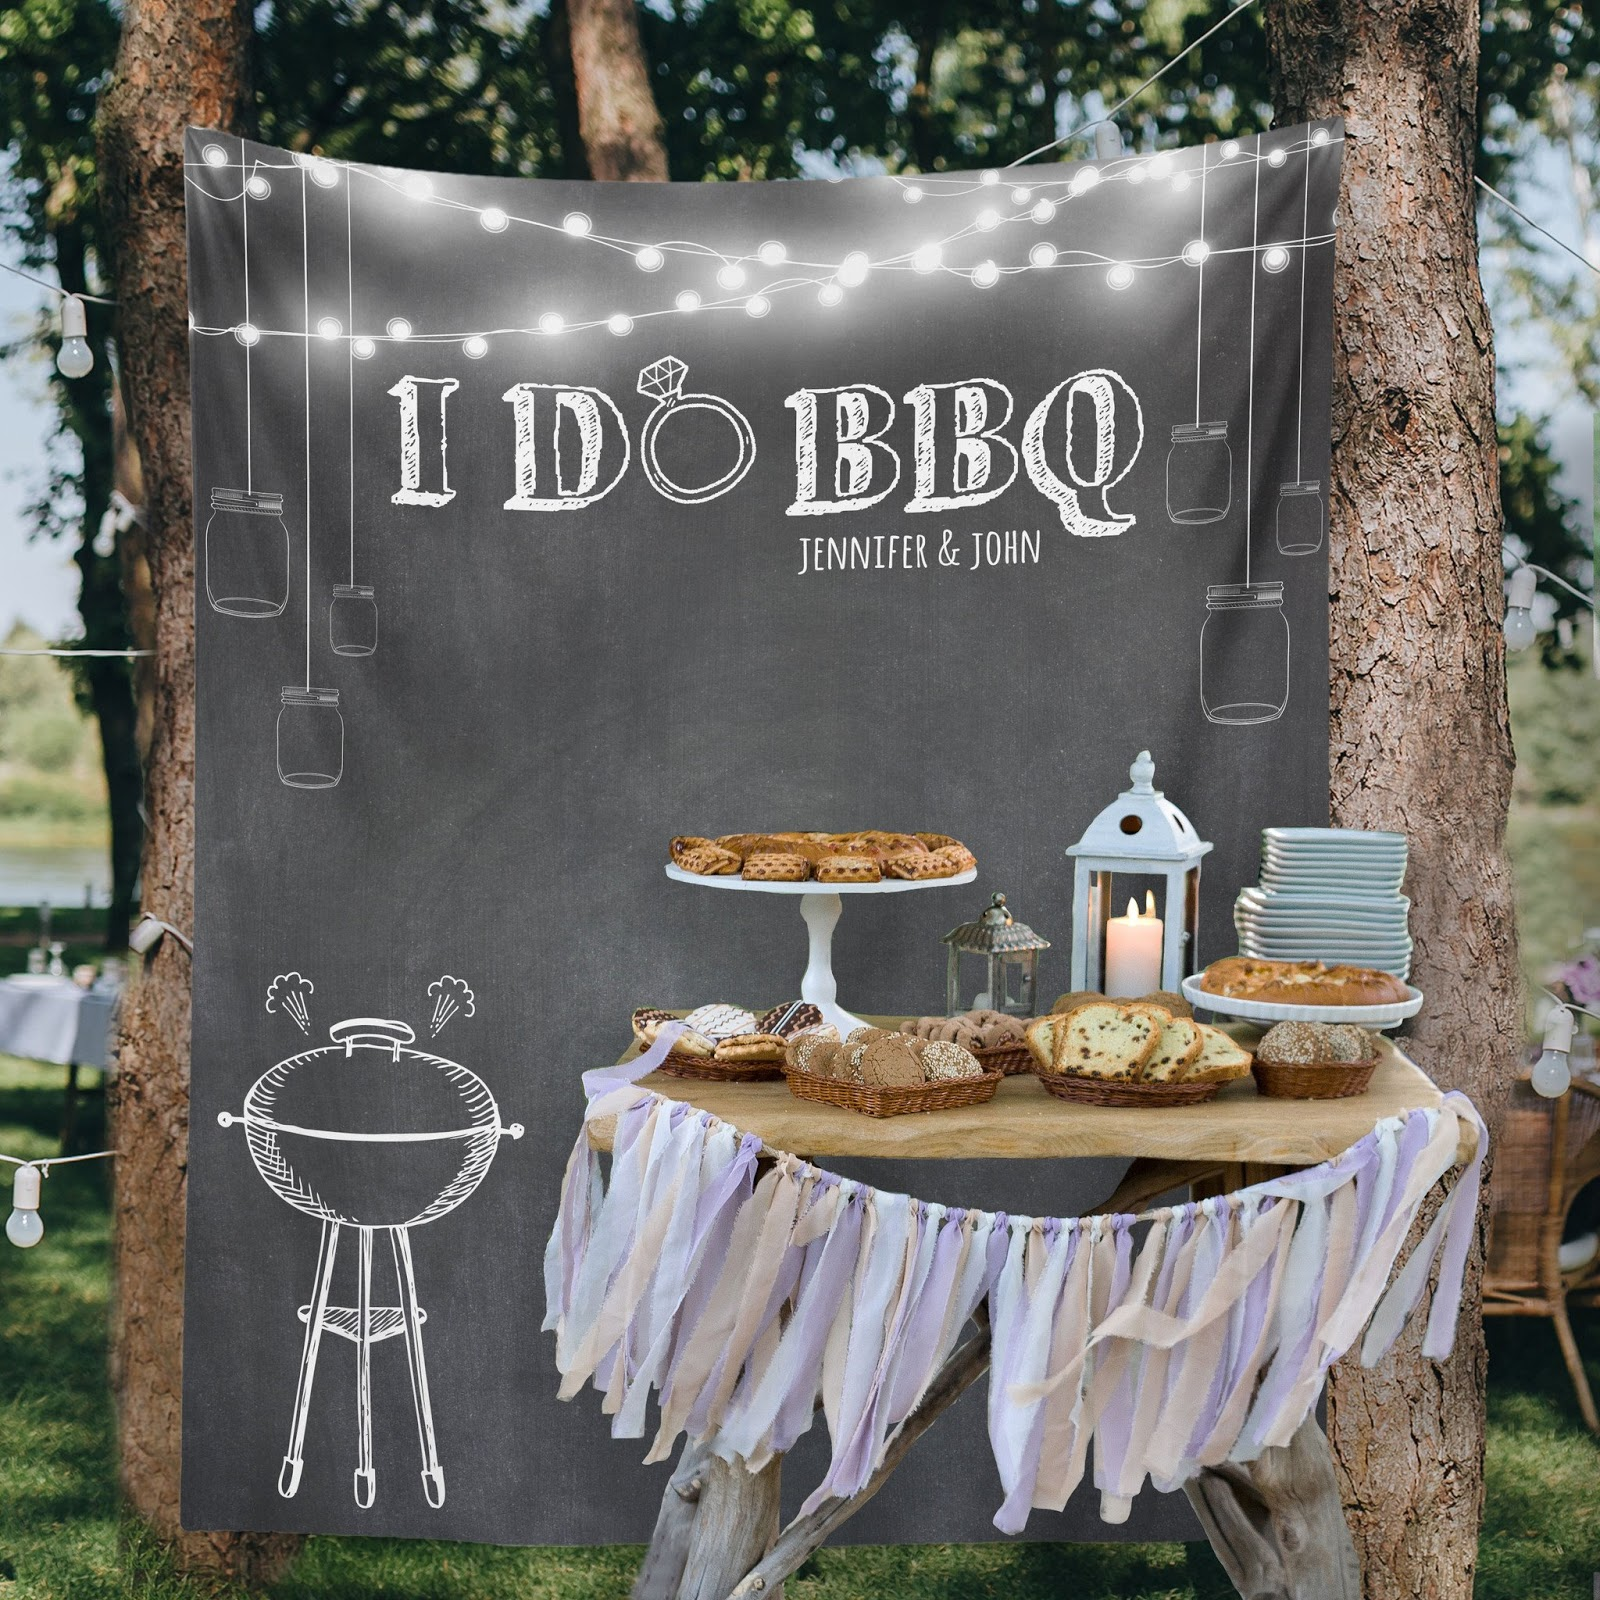 I Do BBQ sign in front of food spread